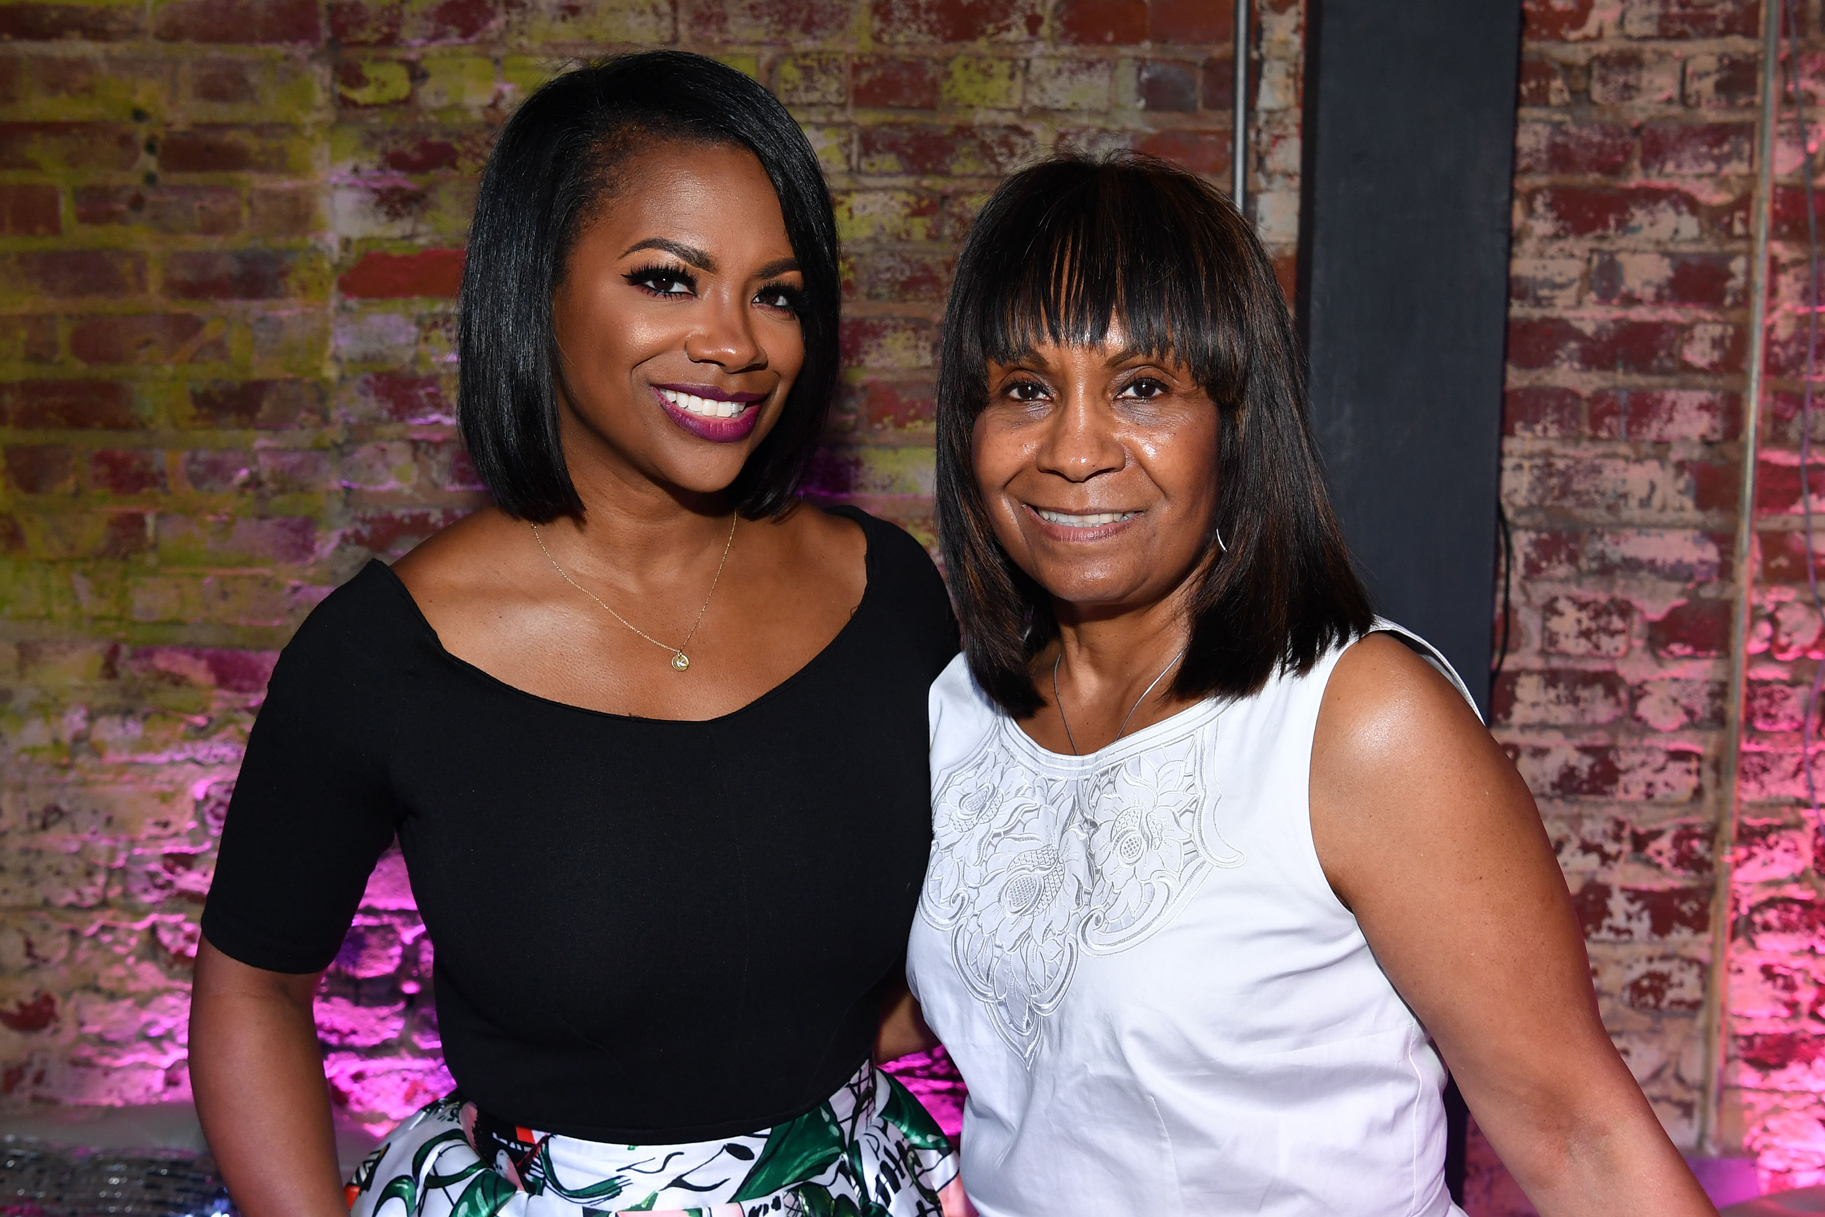 Kandi Burruss Dedicates A Song To Mama Joyce For Mother's Day - Check Out Her Video